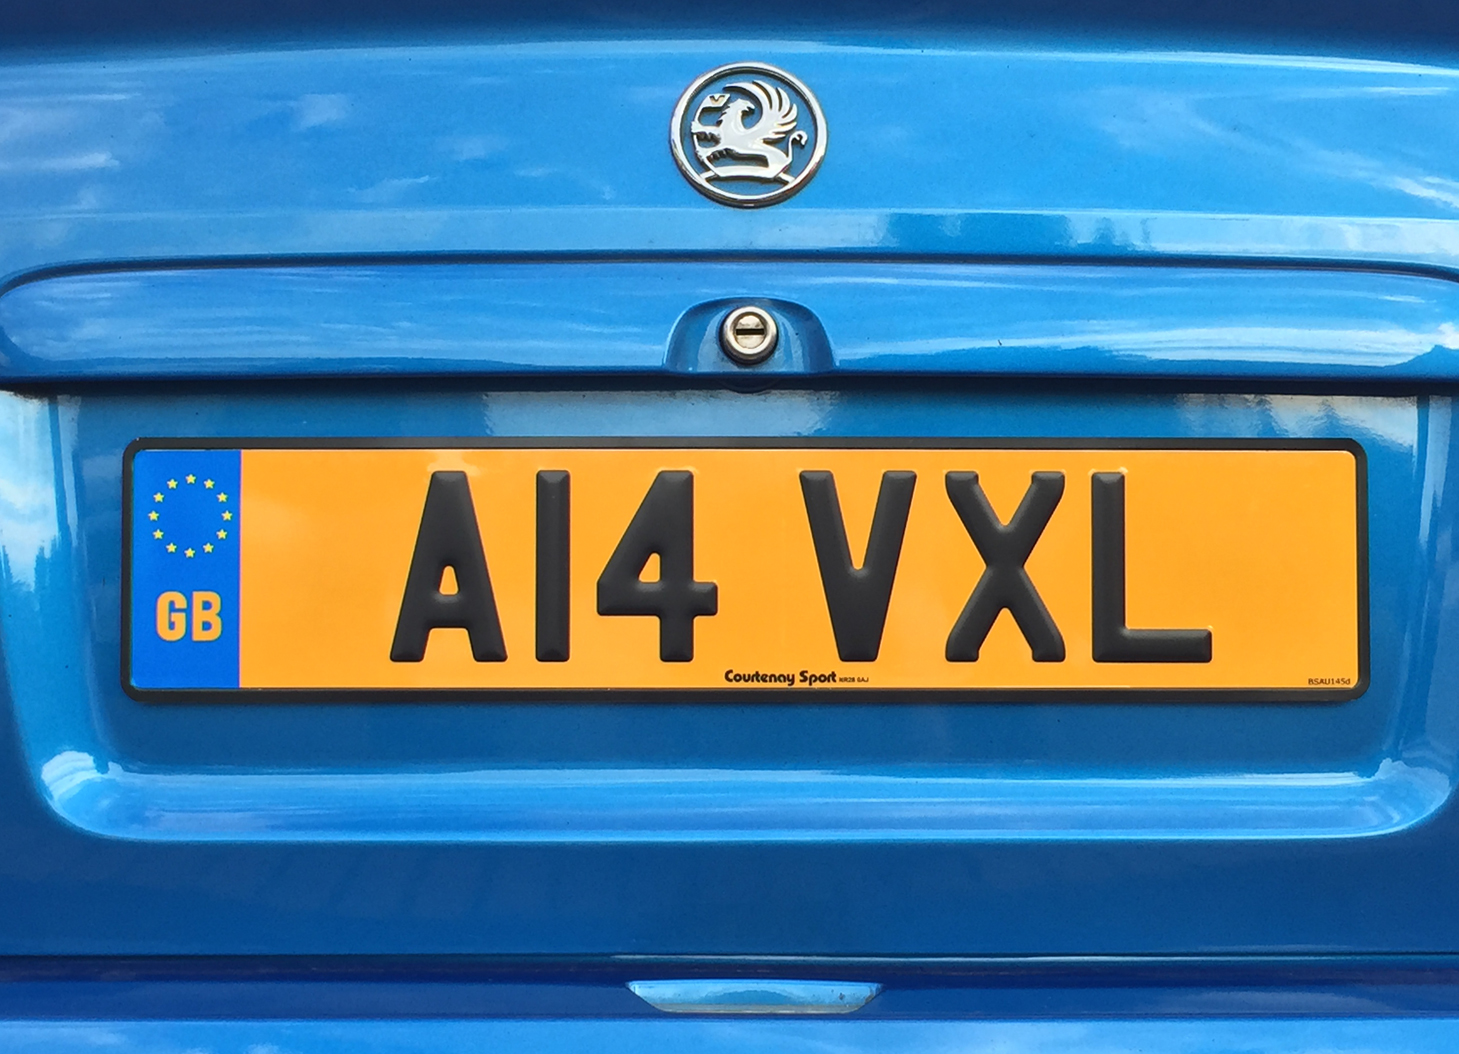 Number Plates | The Courtenay Sport Blog